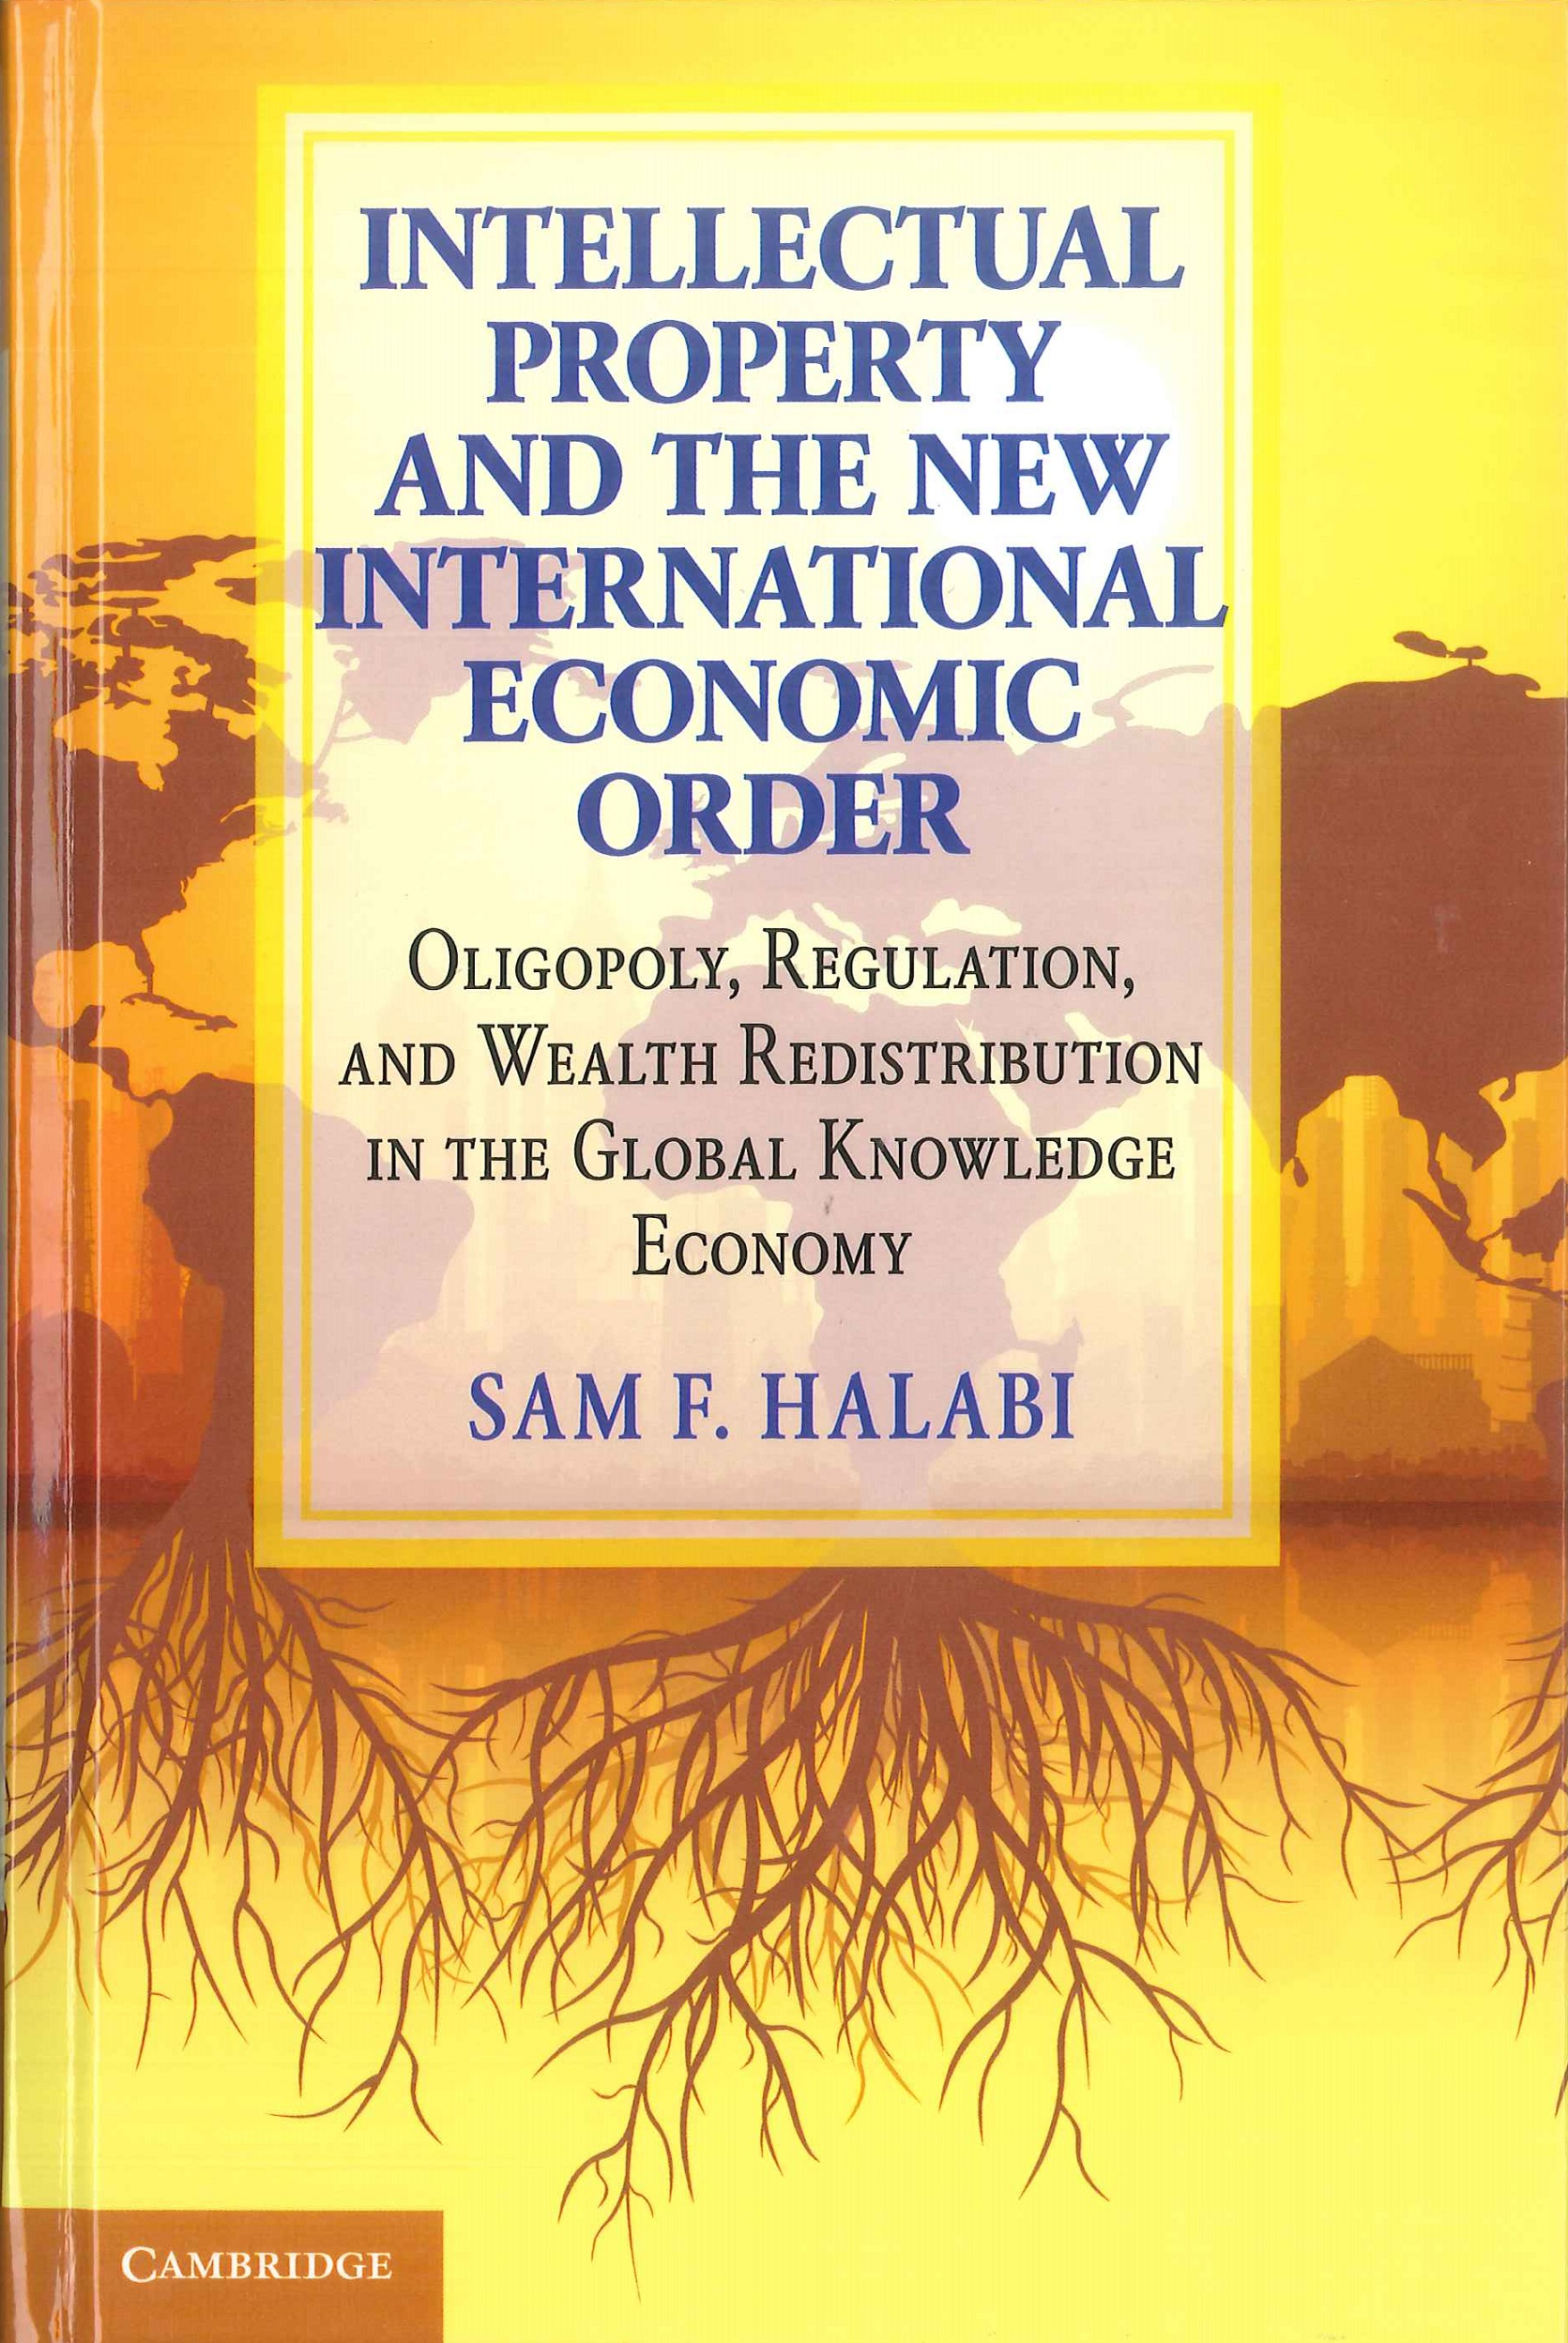 Intellectual property and the new international economic order:oligopoly, regulation, and wealth redistribution in the global knowledge economy